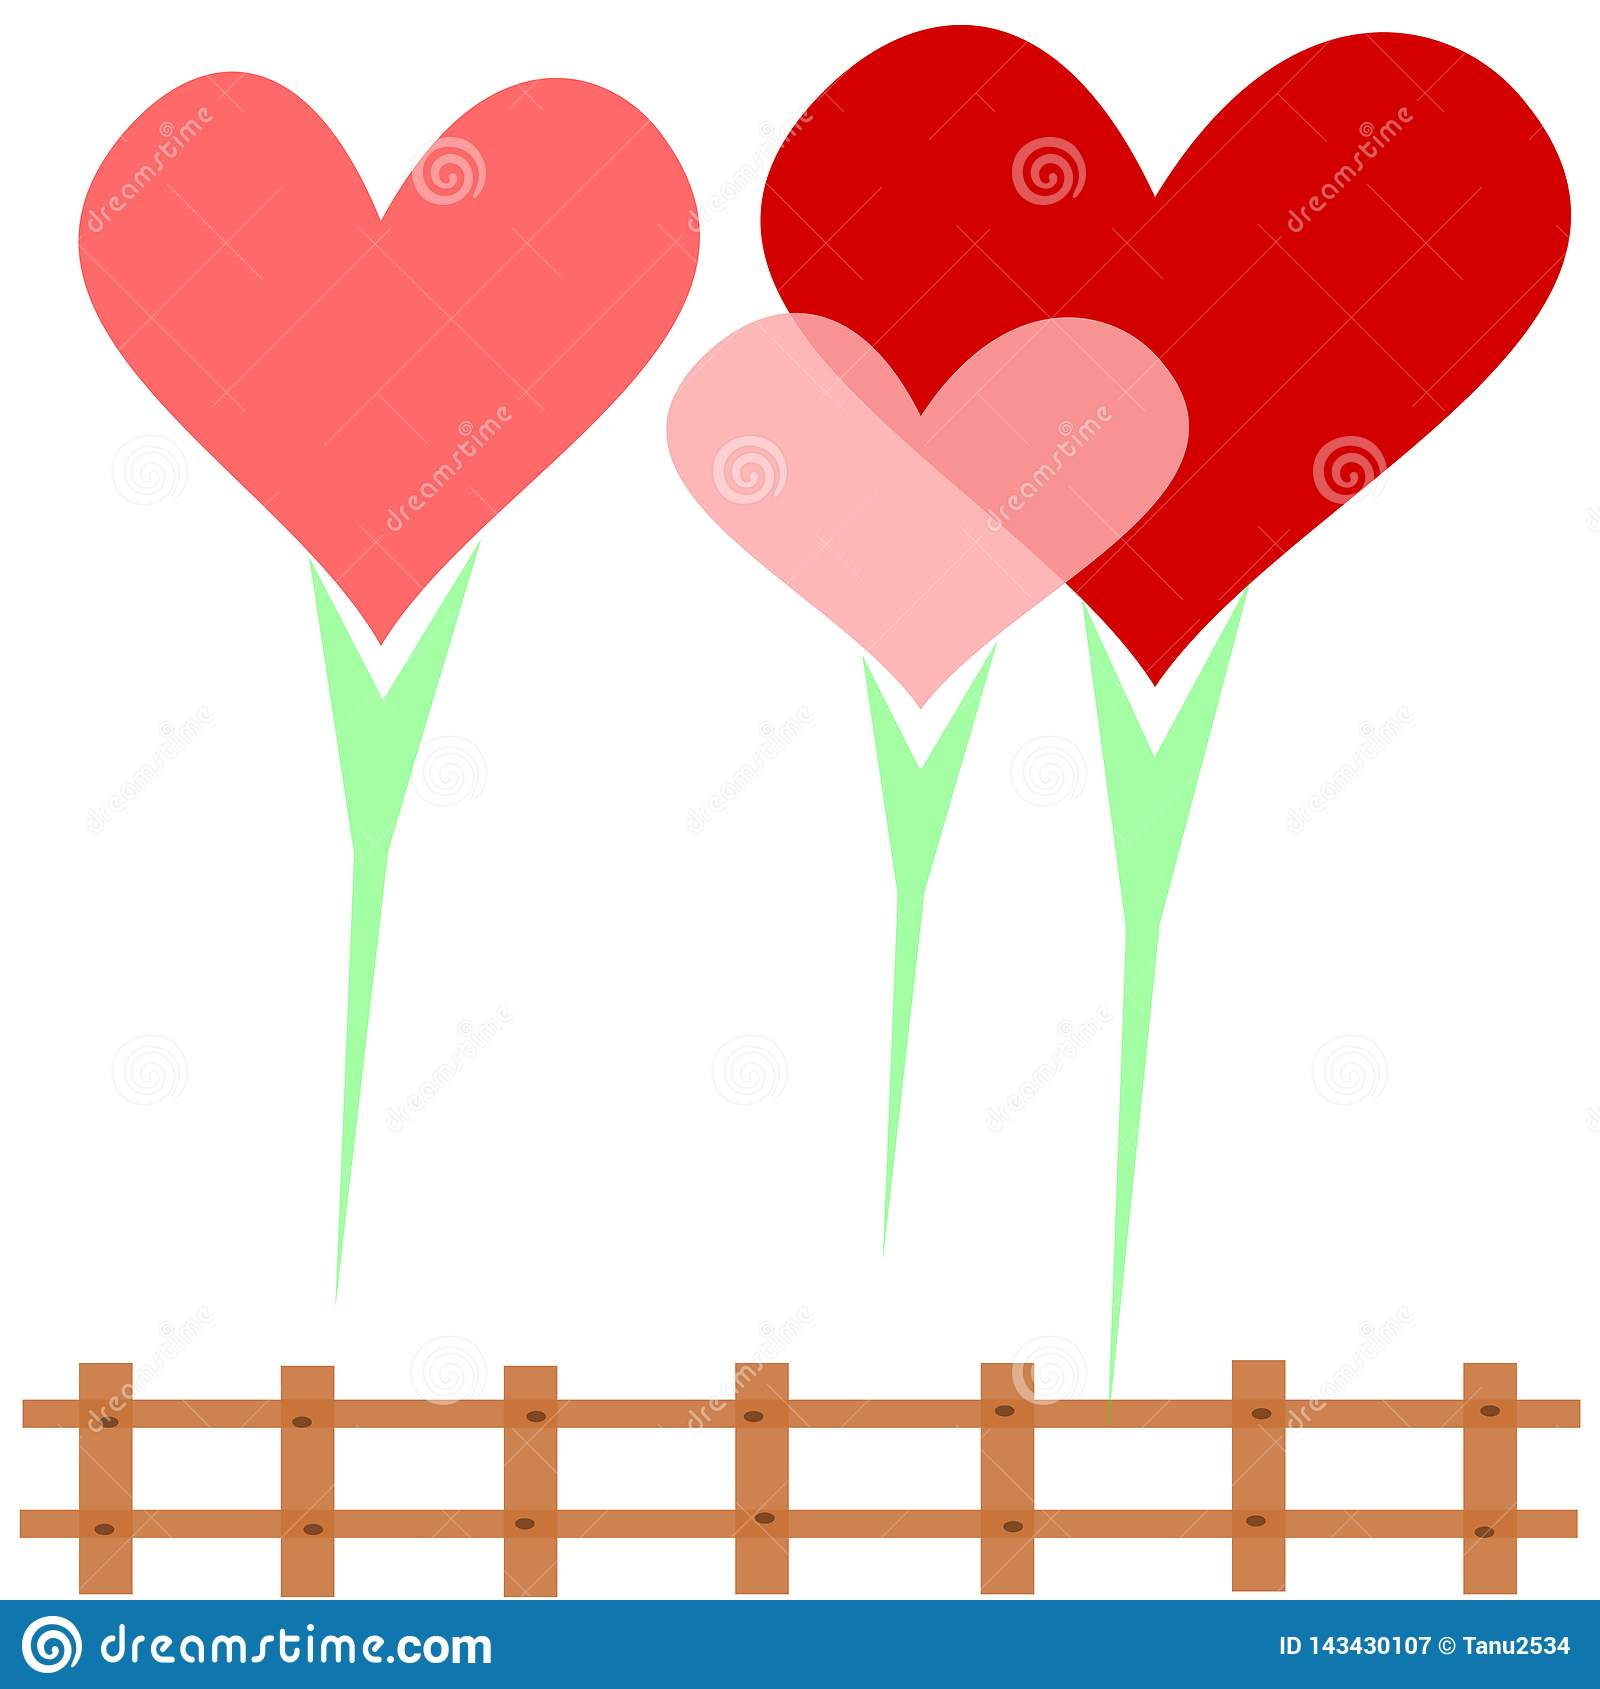 Heart family, 3 hearts surrounded by love on a white background Surrounded by a brown fence